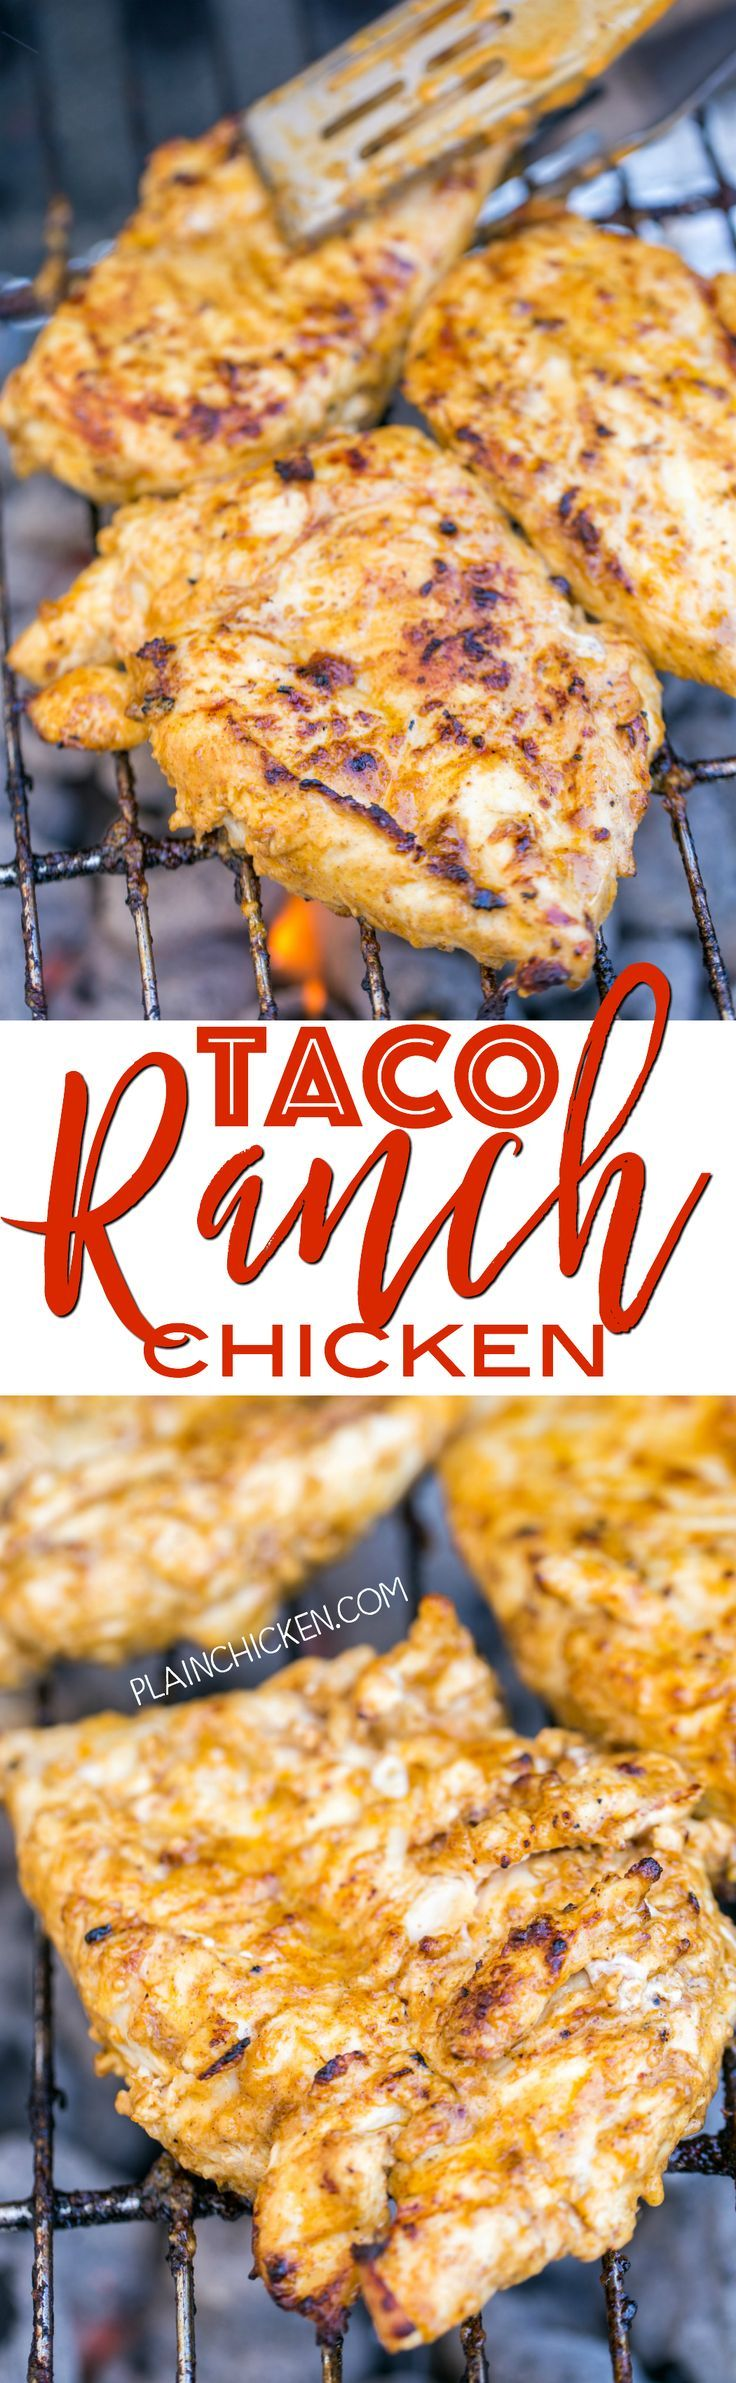 Taco Ranch Chicken - our favorite! SO easy and this tastes delicious! Only 6 ingredients - olive oil, Ranch dressing, taco seasoning, lime juice, vinegar and chicken. Great on its own or on top of a salad or in tacos and quesadillas. We make this at least